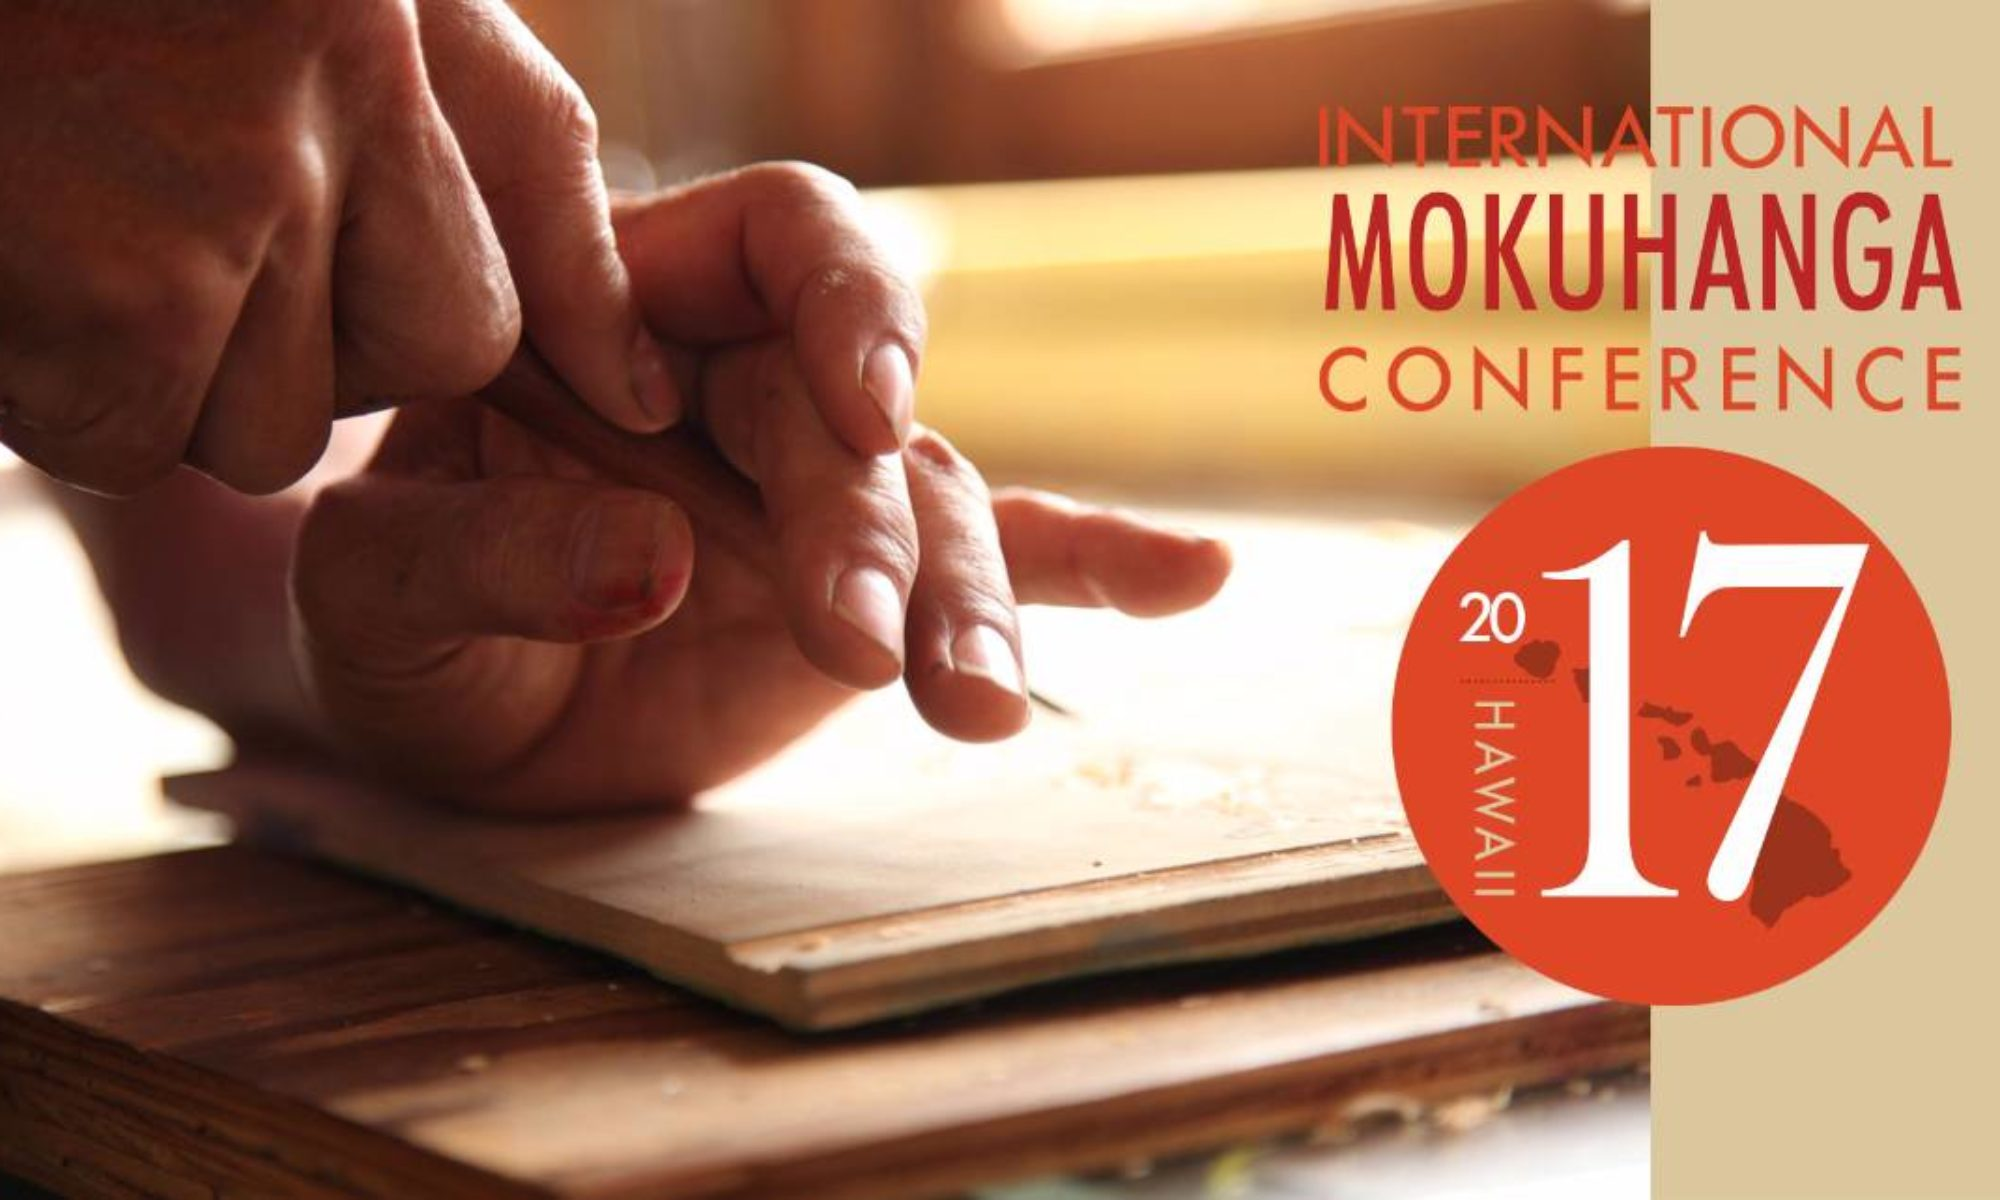 2017 International Mokuhanga Conference